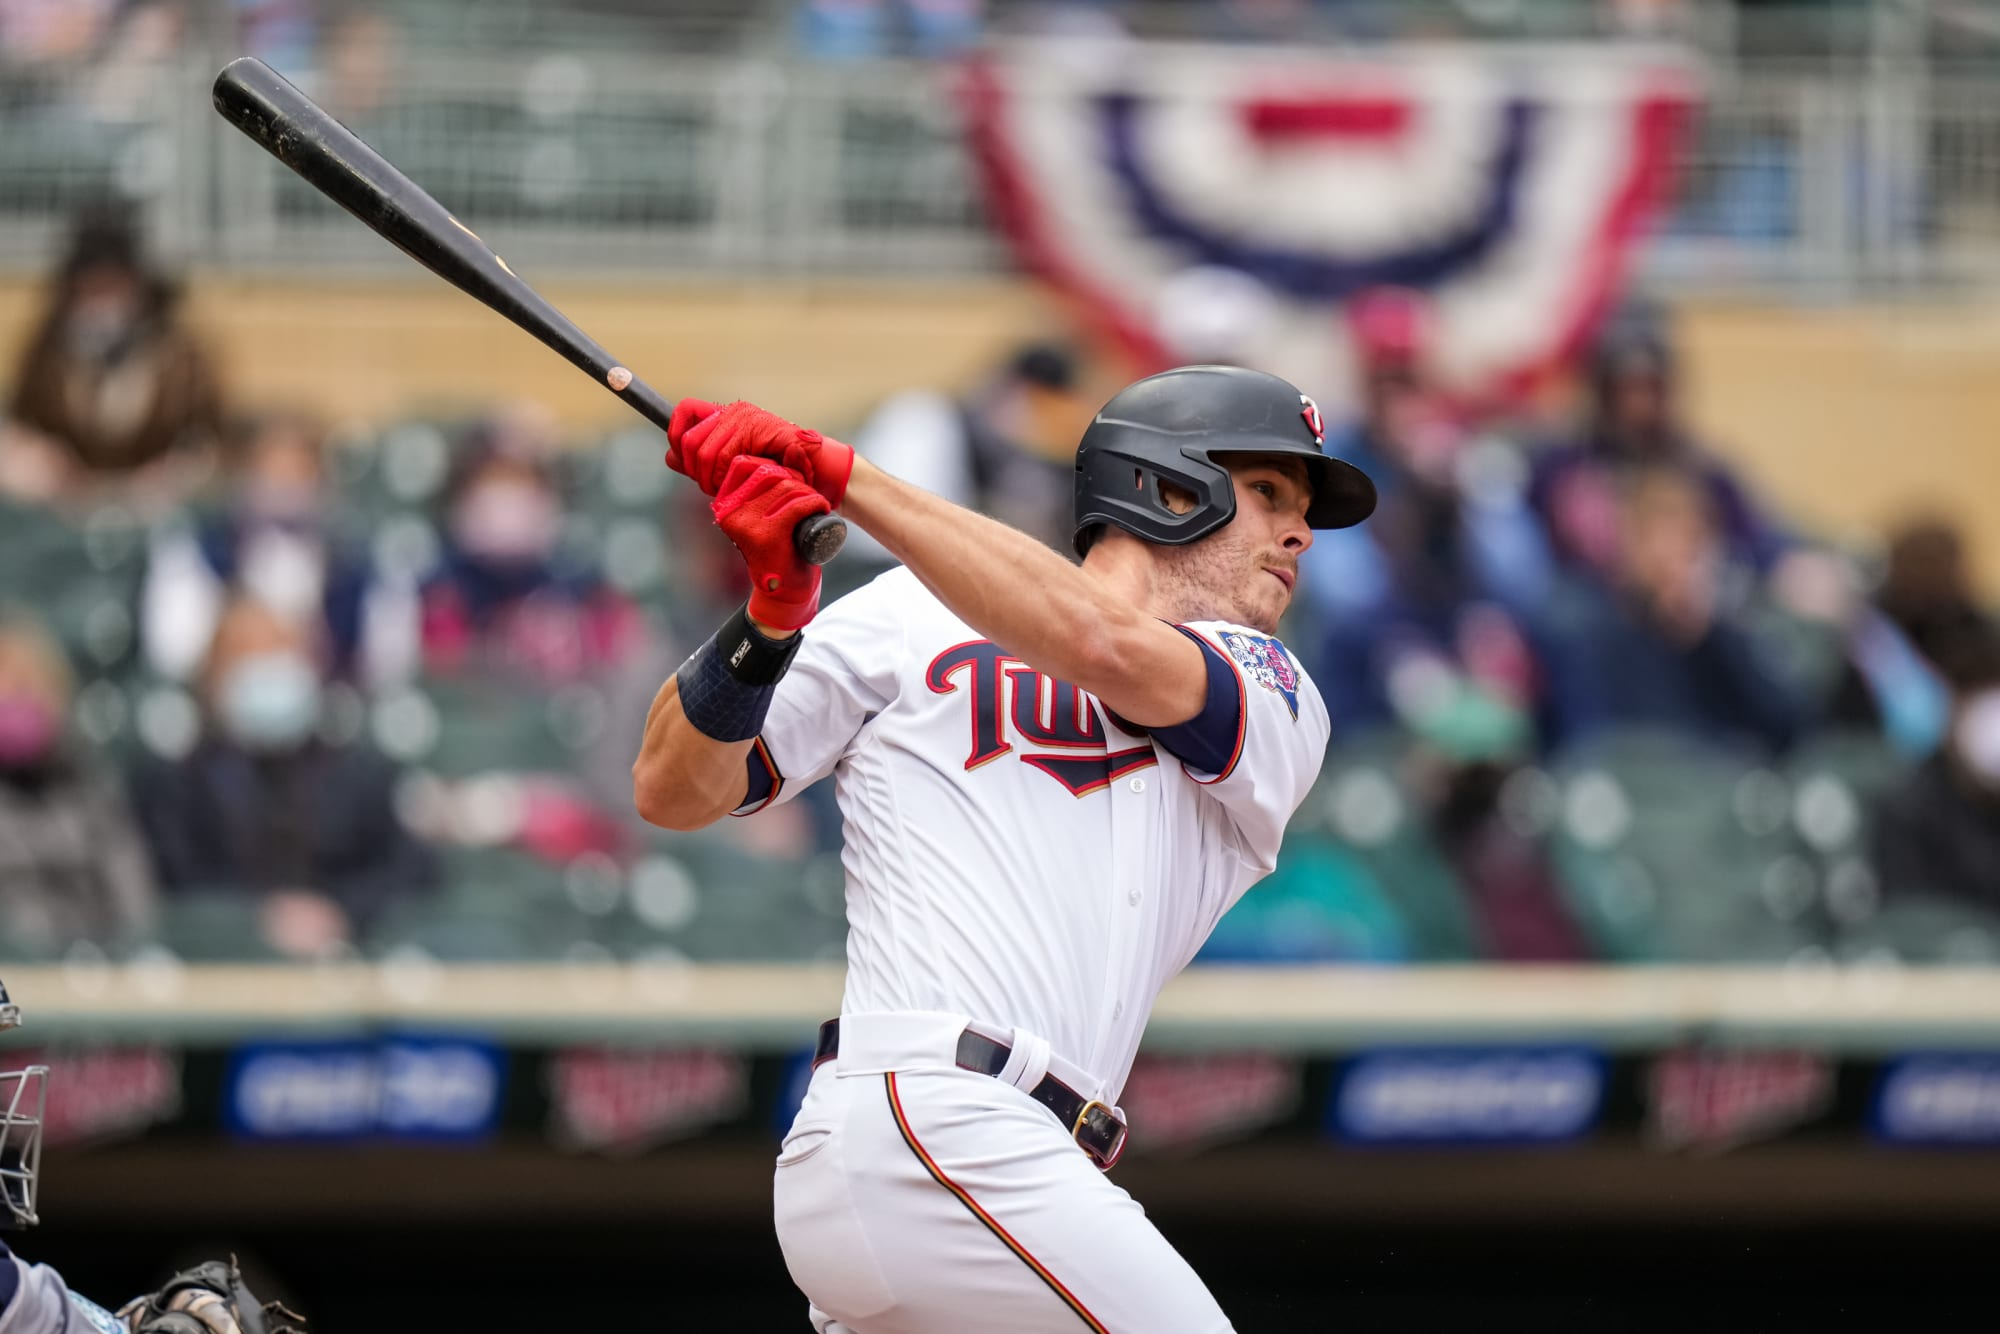 Yankees: Twins' rough season might've gifted NYY great trade target